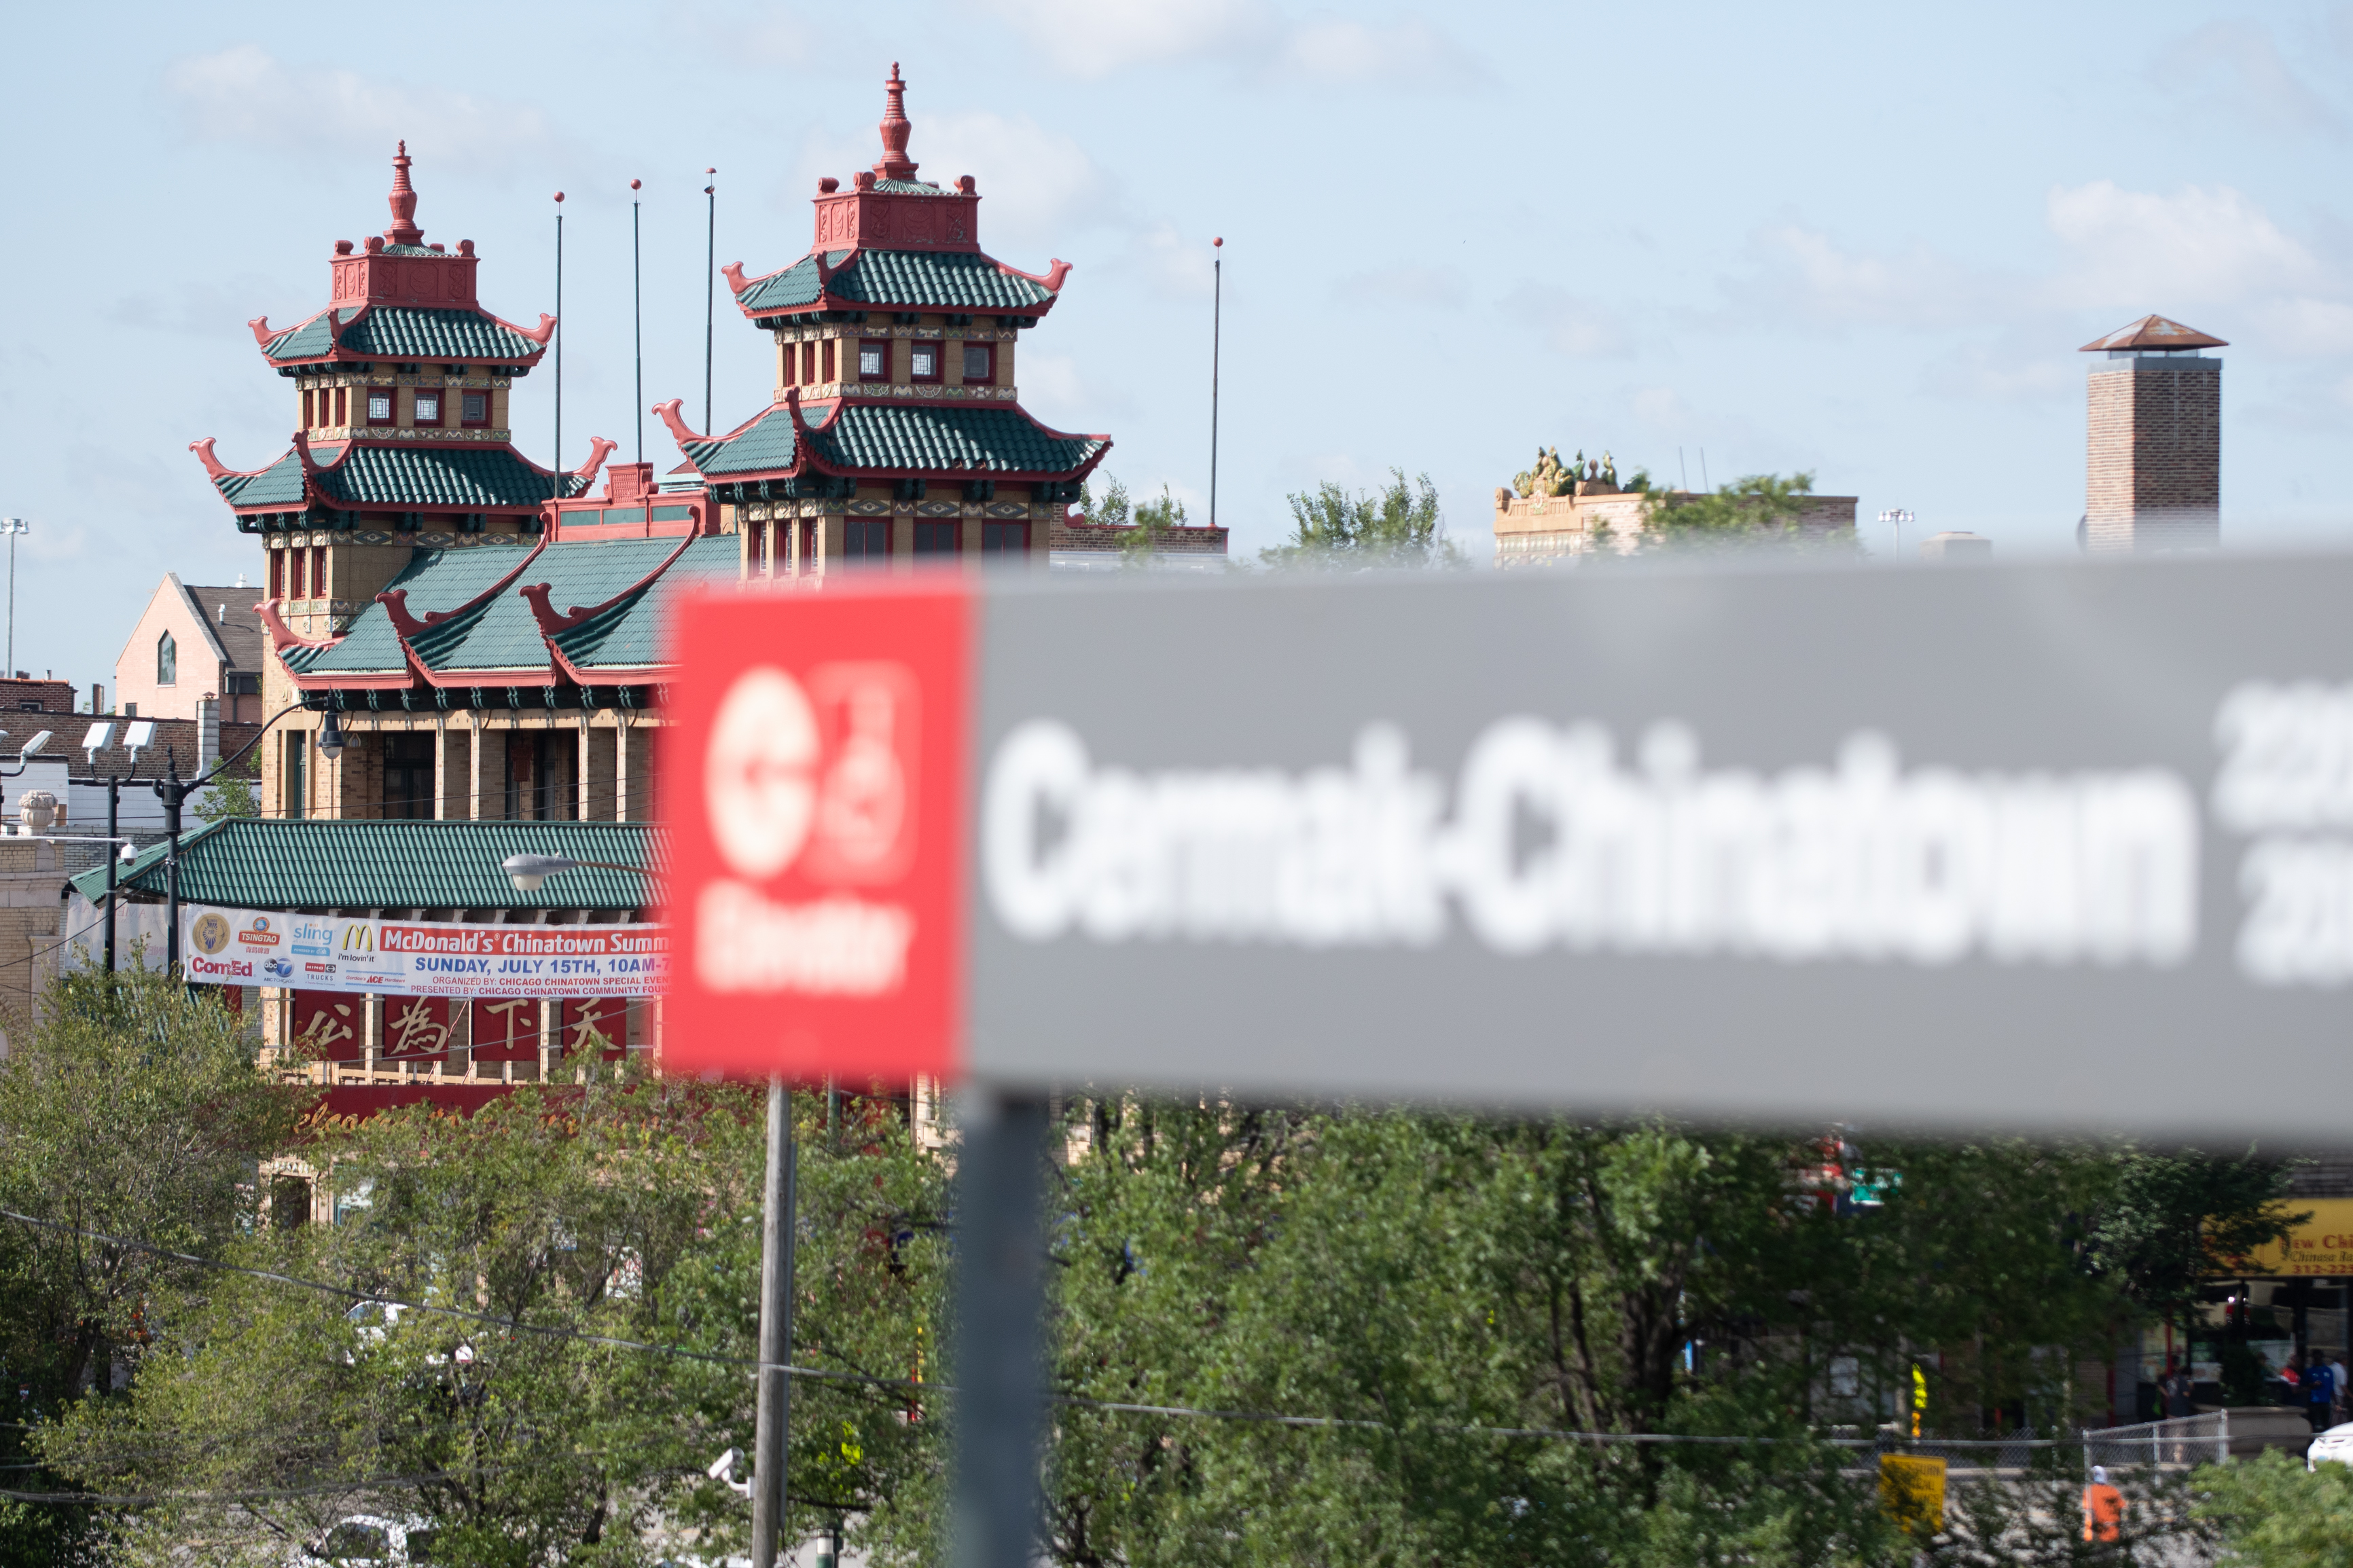 Chinatown would become part of the city's first majority Asian-American ward under an 11th Ward remap proposal from Chinatown community leaders.